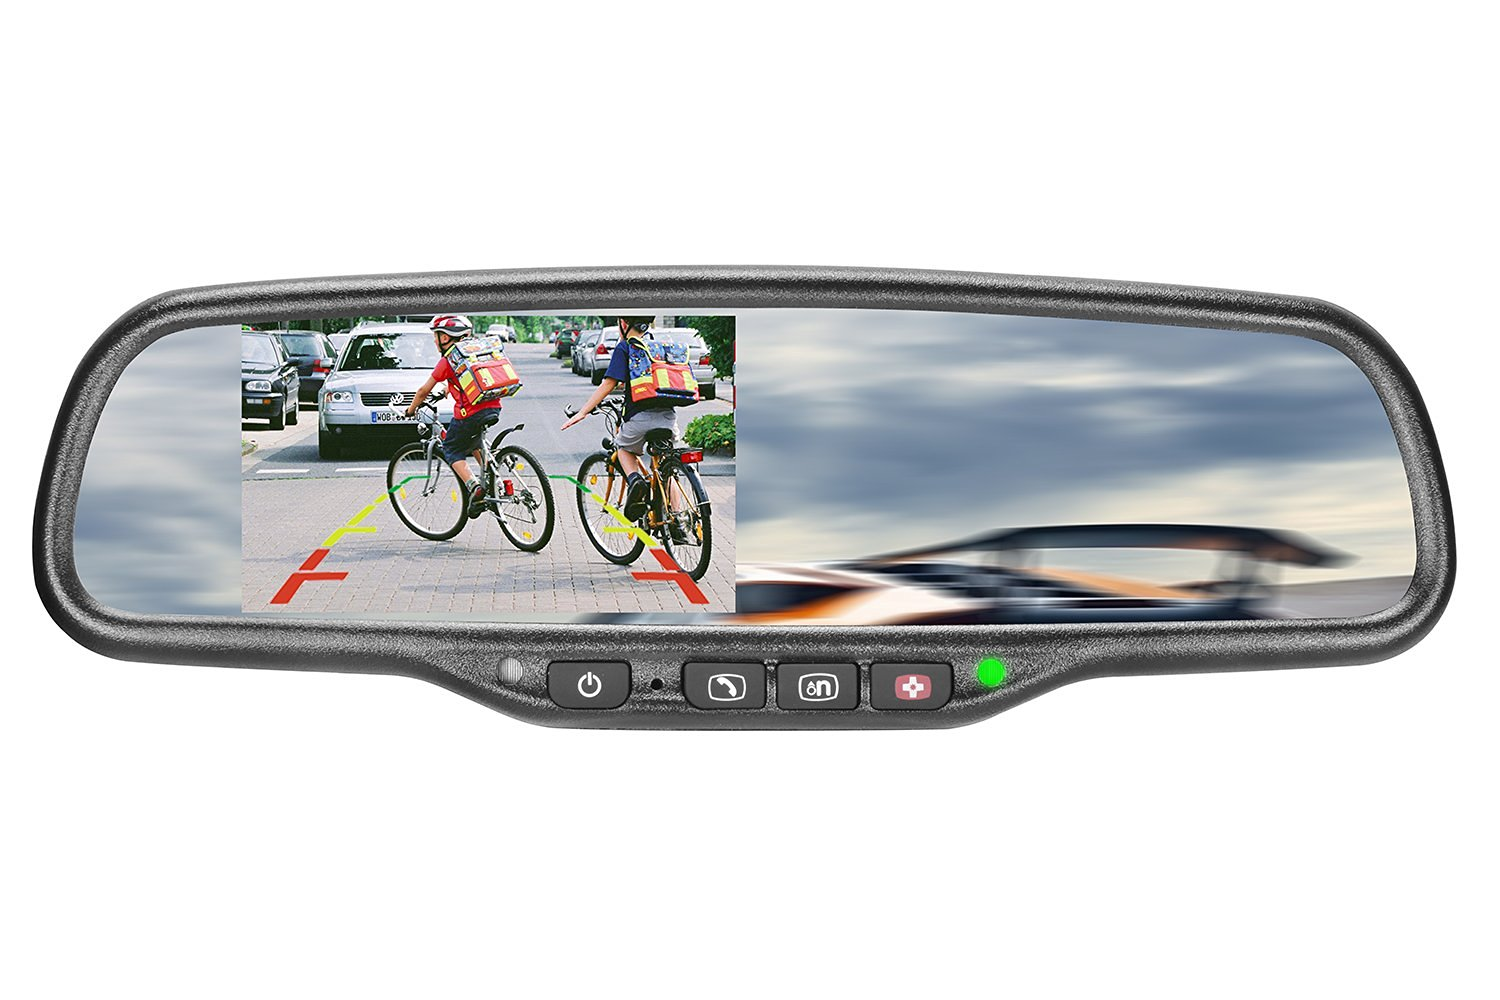 "iMirror GHK-043LA-ON Car Rearview Mirror with 4.3"" LCD Display Mirror Monitor Specially Designed for GM On-star"